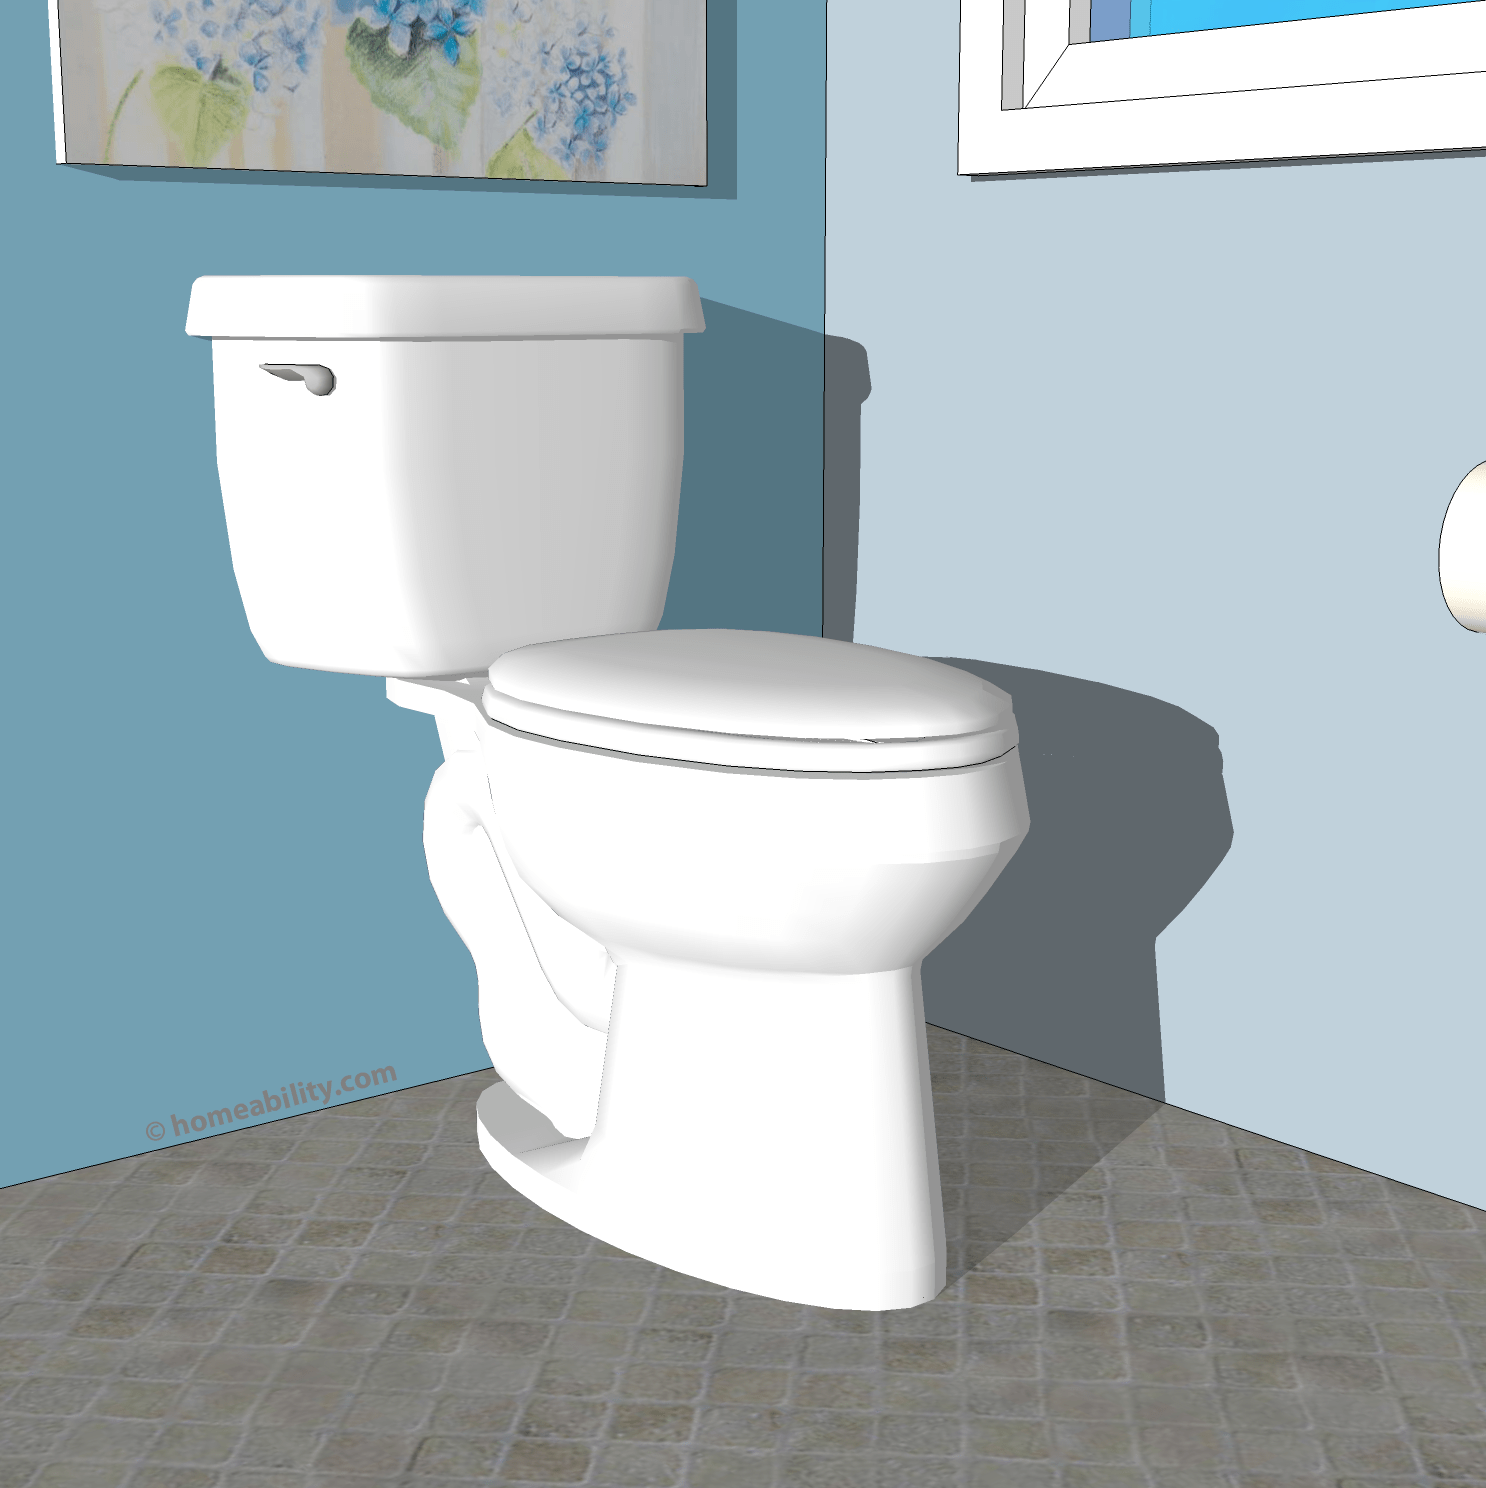 handicap potty chair swing indoor toilets for disabled person which type is best